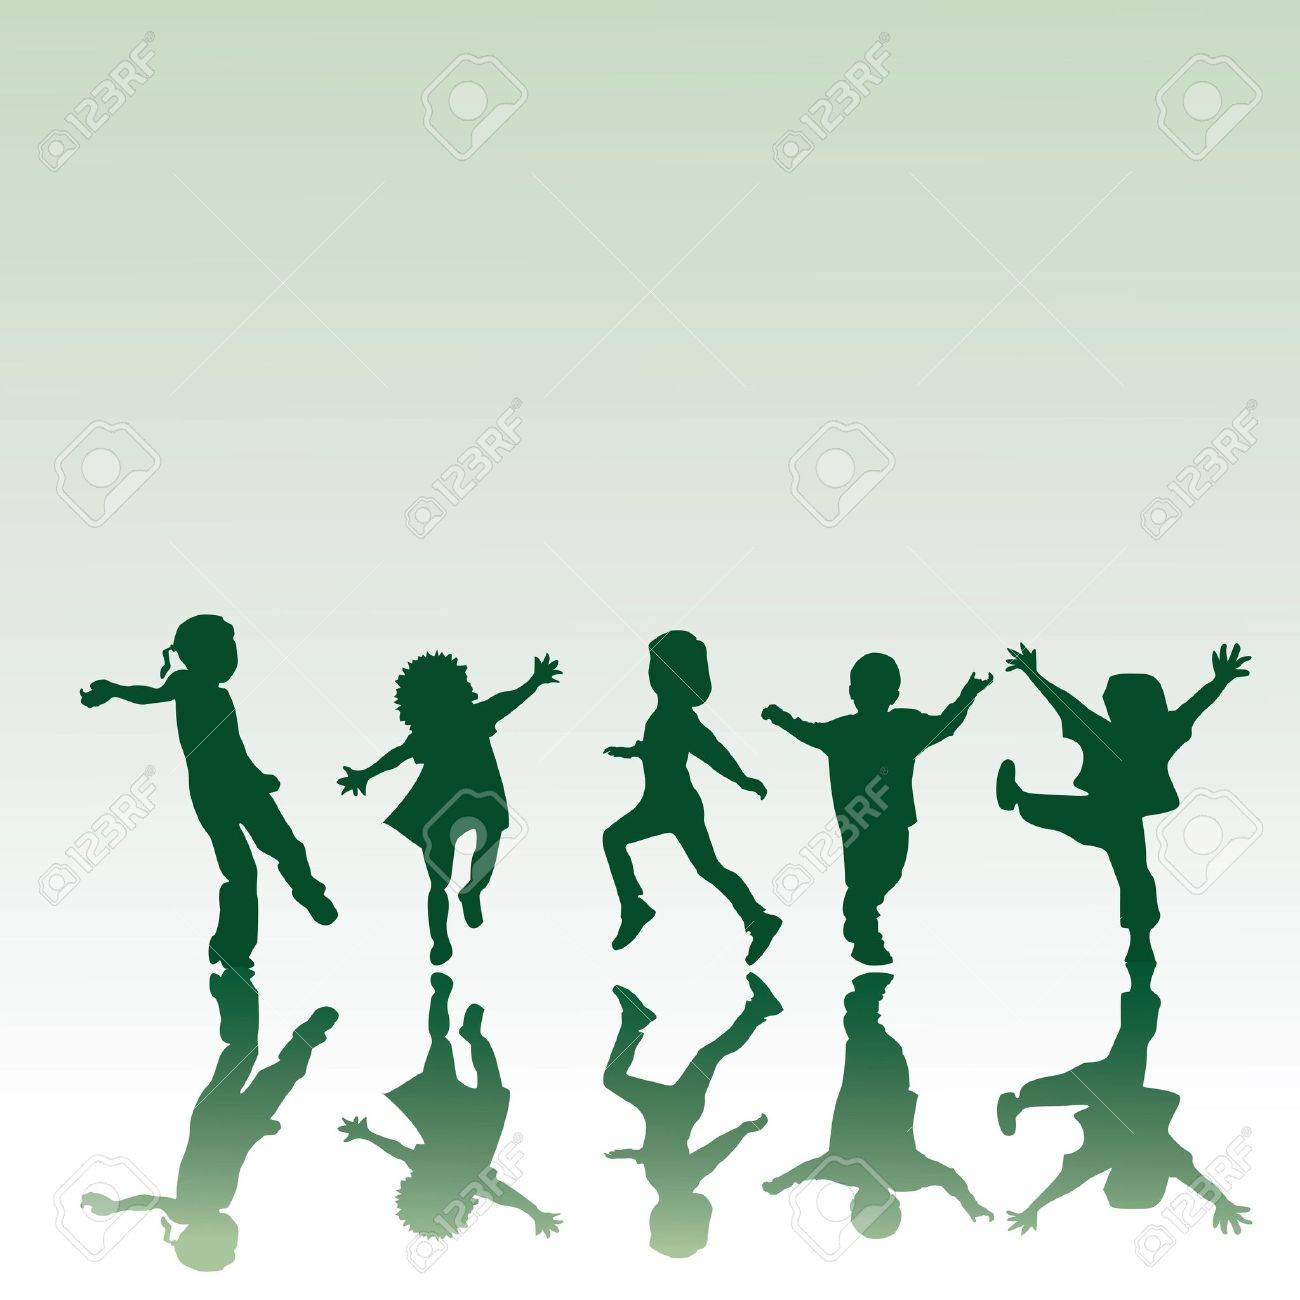 Five children silhouettes in different positions, illustration Stock Illustration - 6196308